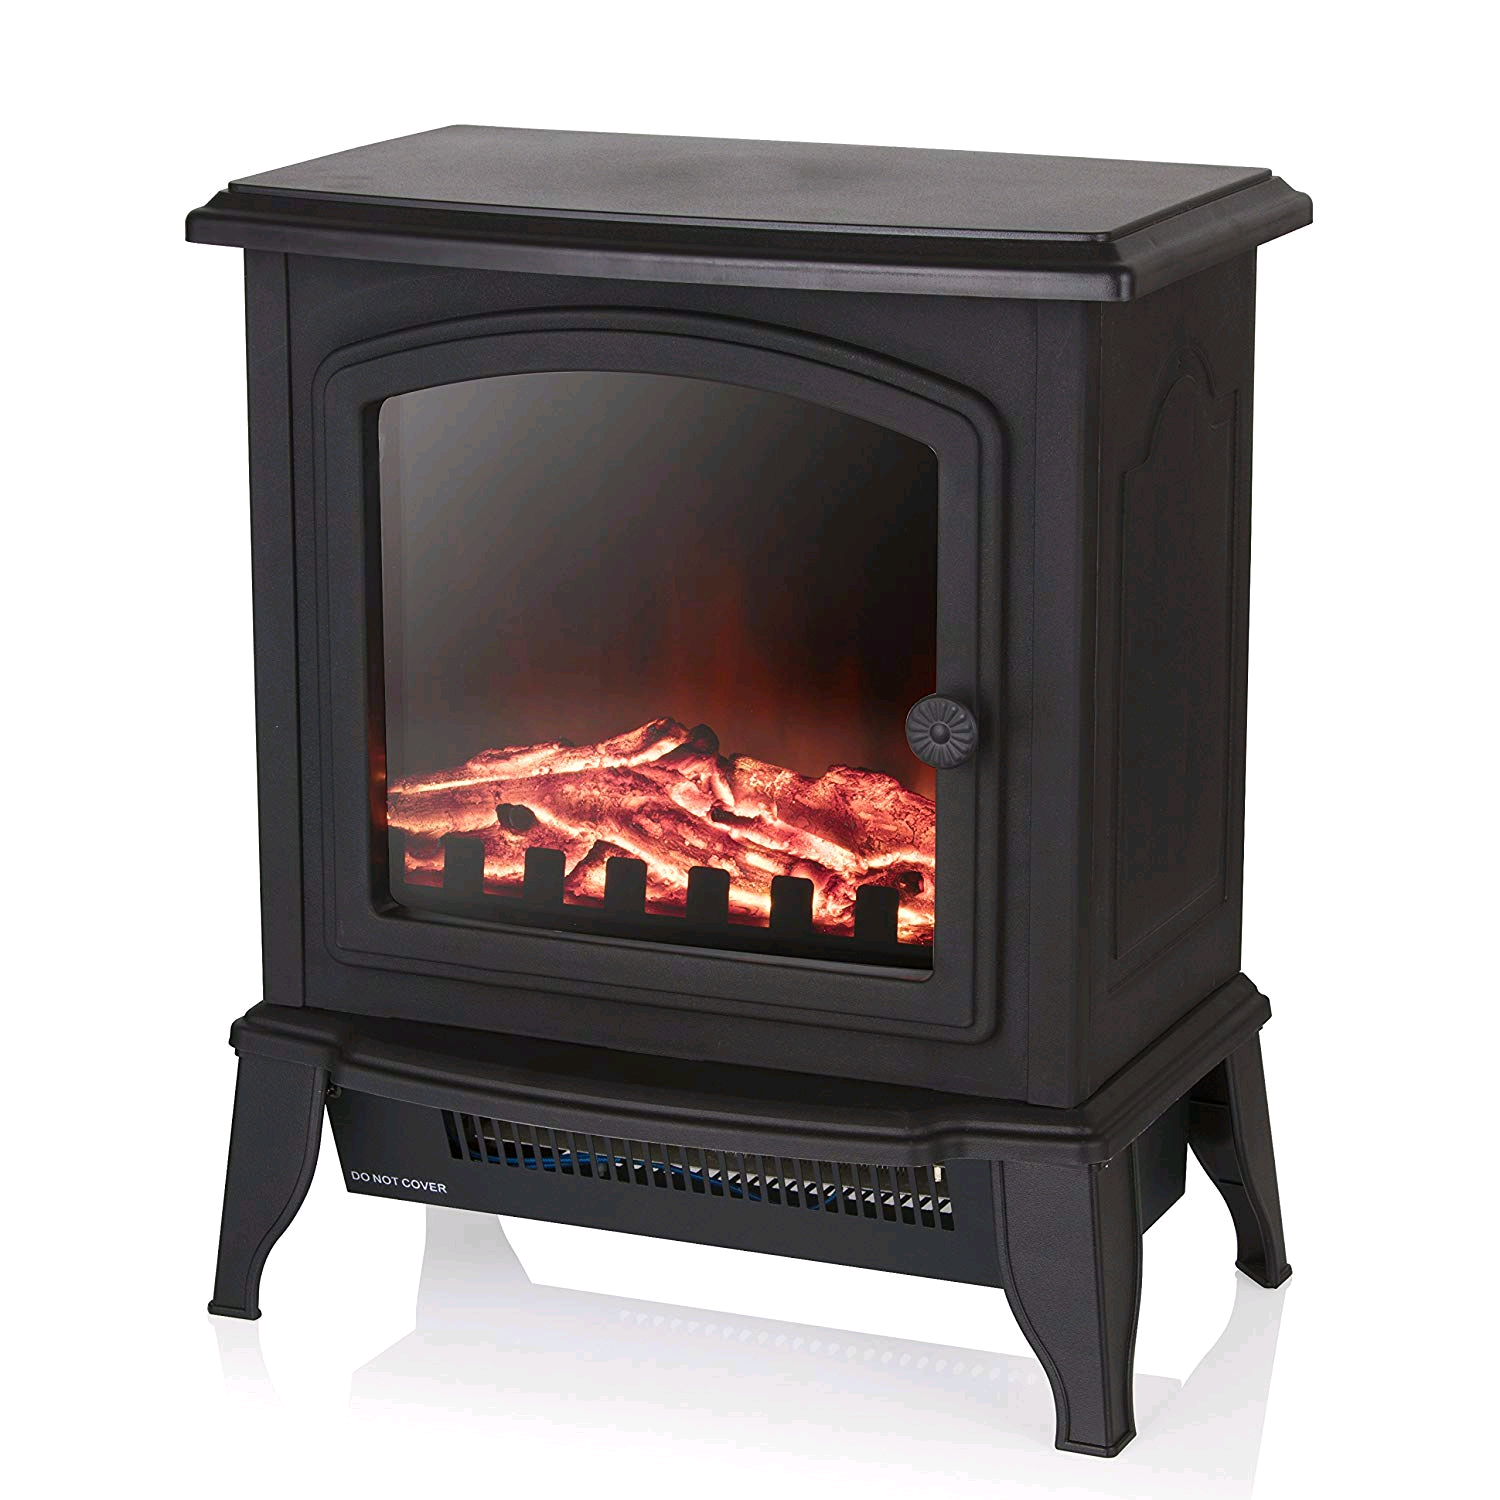 Warmlite WL46021 Electric Compact Stove Fire with Adjustable Thermostat Control, Realistic LED Flame Effect, 1000-2000 W